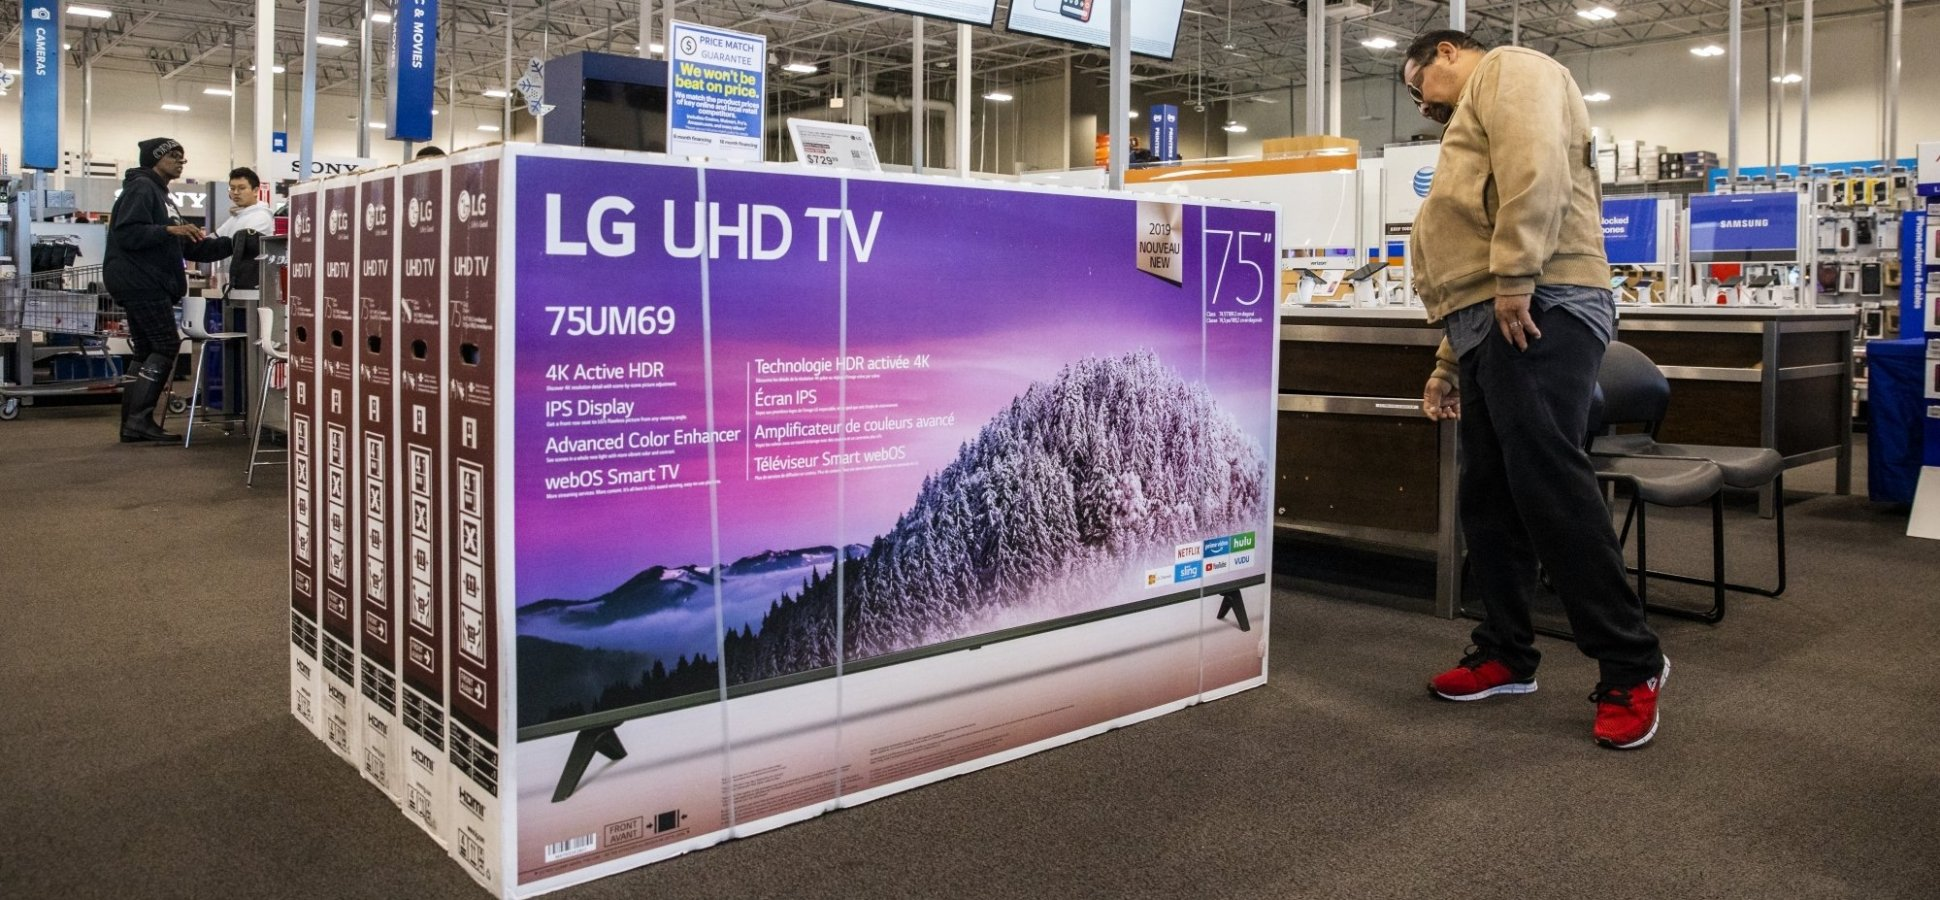 If You Bought a Smart TV on Black Friday, the FBI has a Warning for You